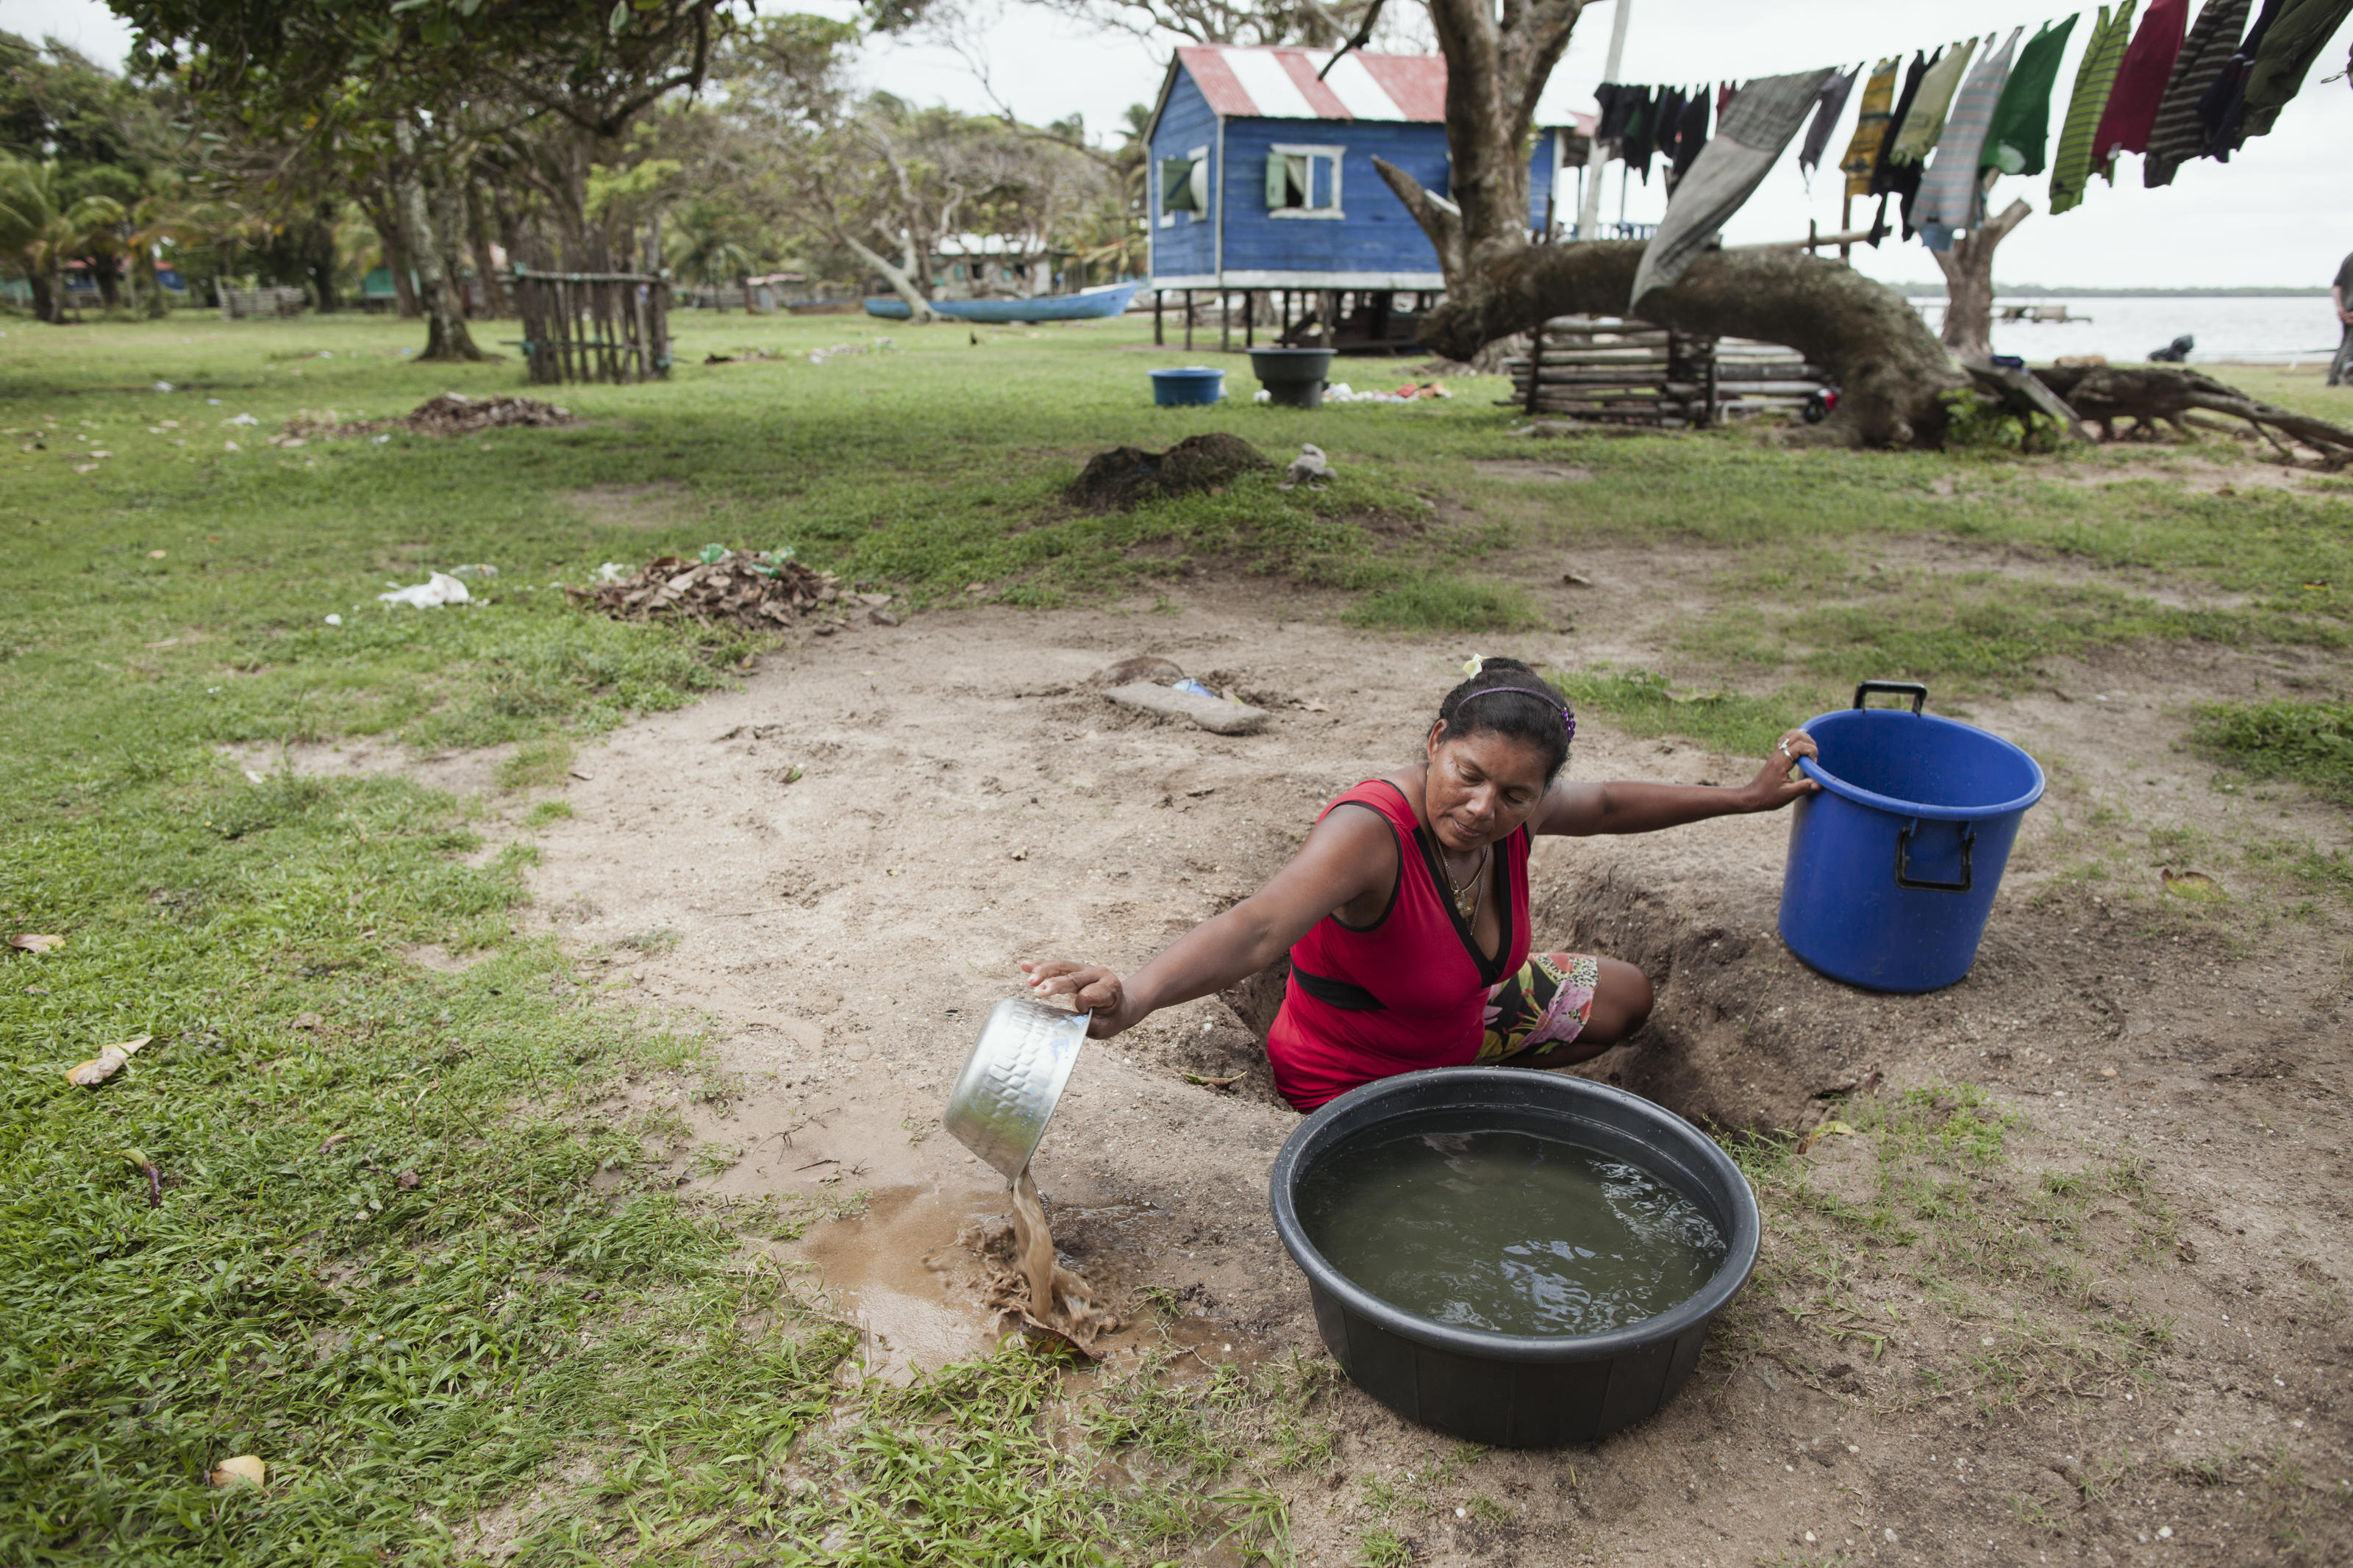 Carla Espinoza Urbina, 37 cleaning the water of the well by taking the sandy water out. As the well the family normally uses has been flooded after heavy rains, she had to move to another one 10 min away from her house. Wawa Bar, Bilwi, Nicaragua, 2015.